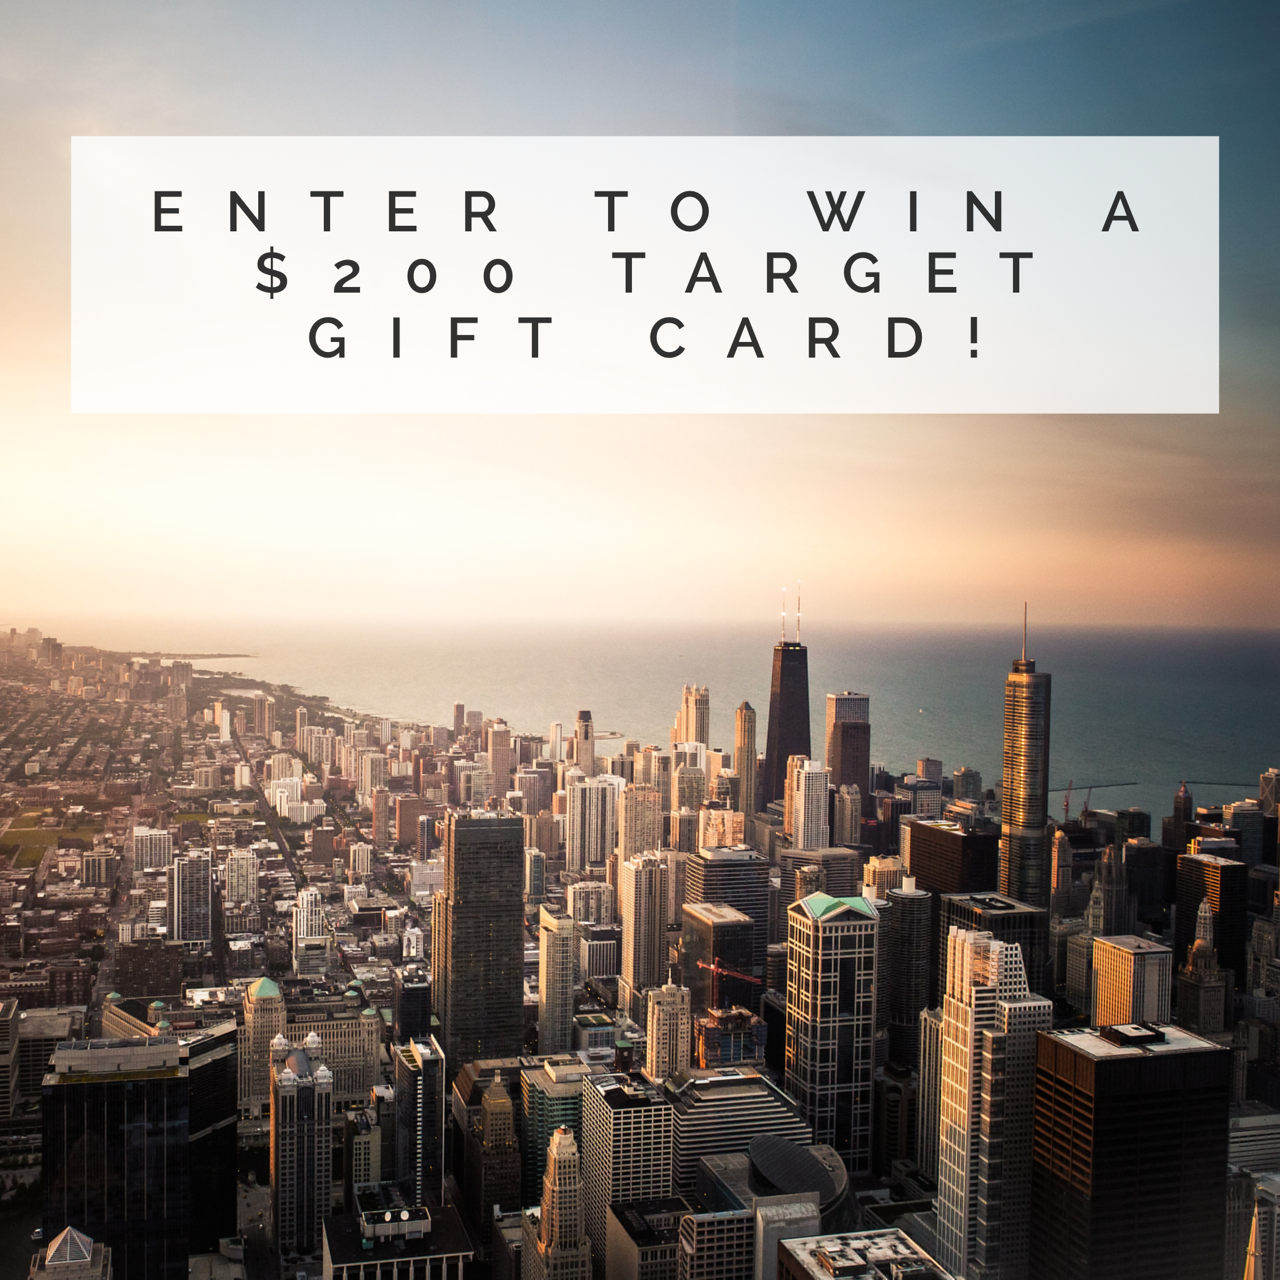 target gift card giveaway, chicago skyline, sears tower sky deck, willis tower, natalie craig, natalie in the city, blogger giveaway